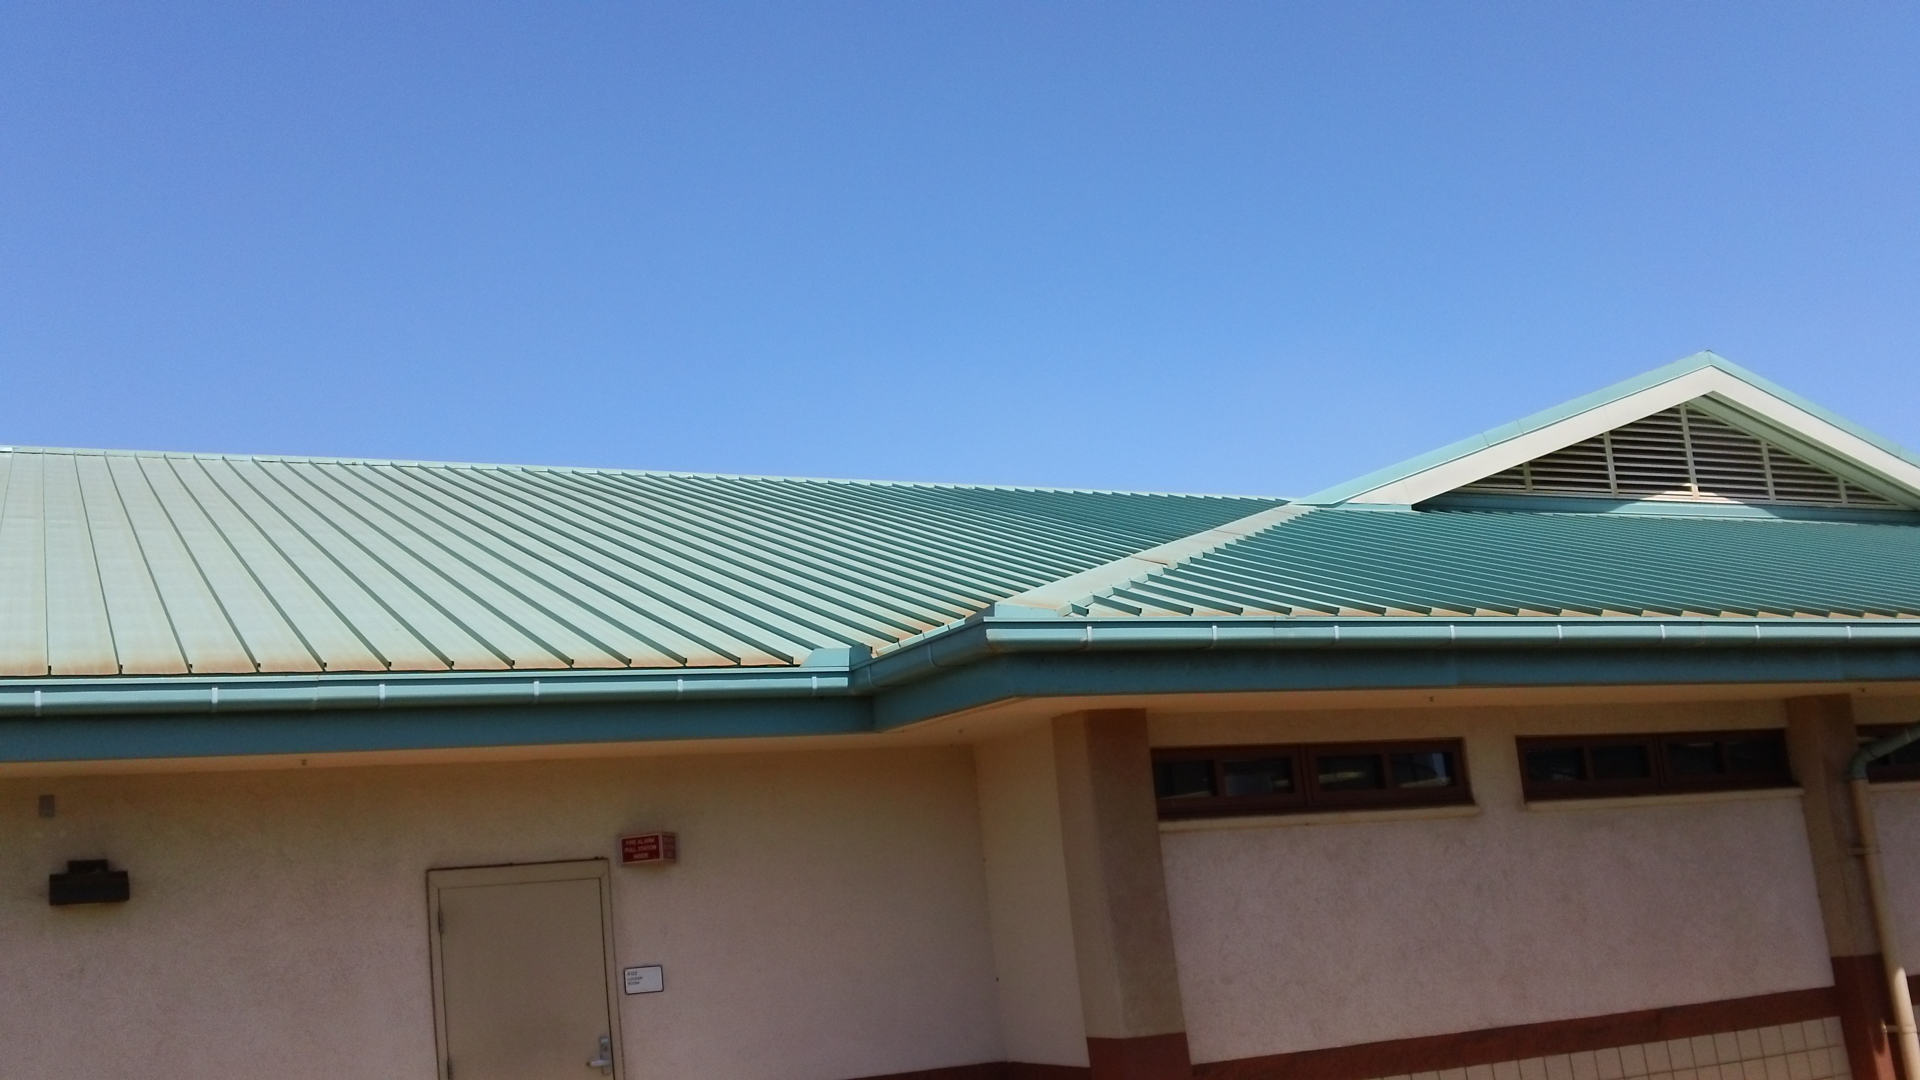 Puunene Readiness Center Building Roof and Gutter Repair and